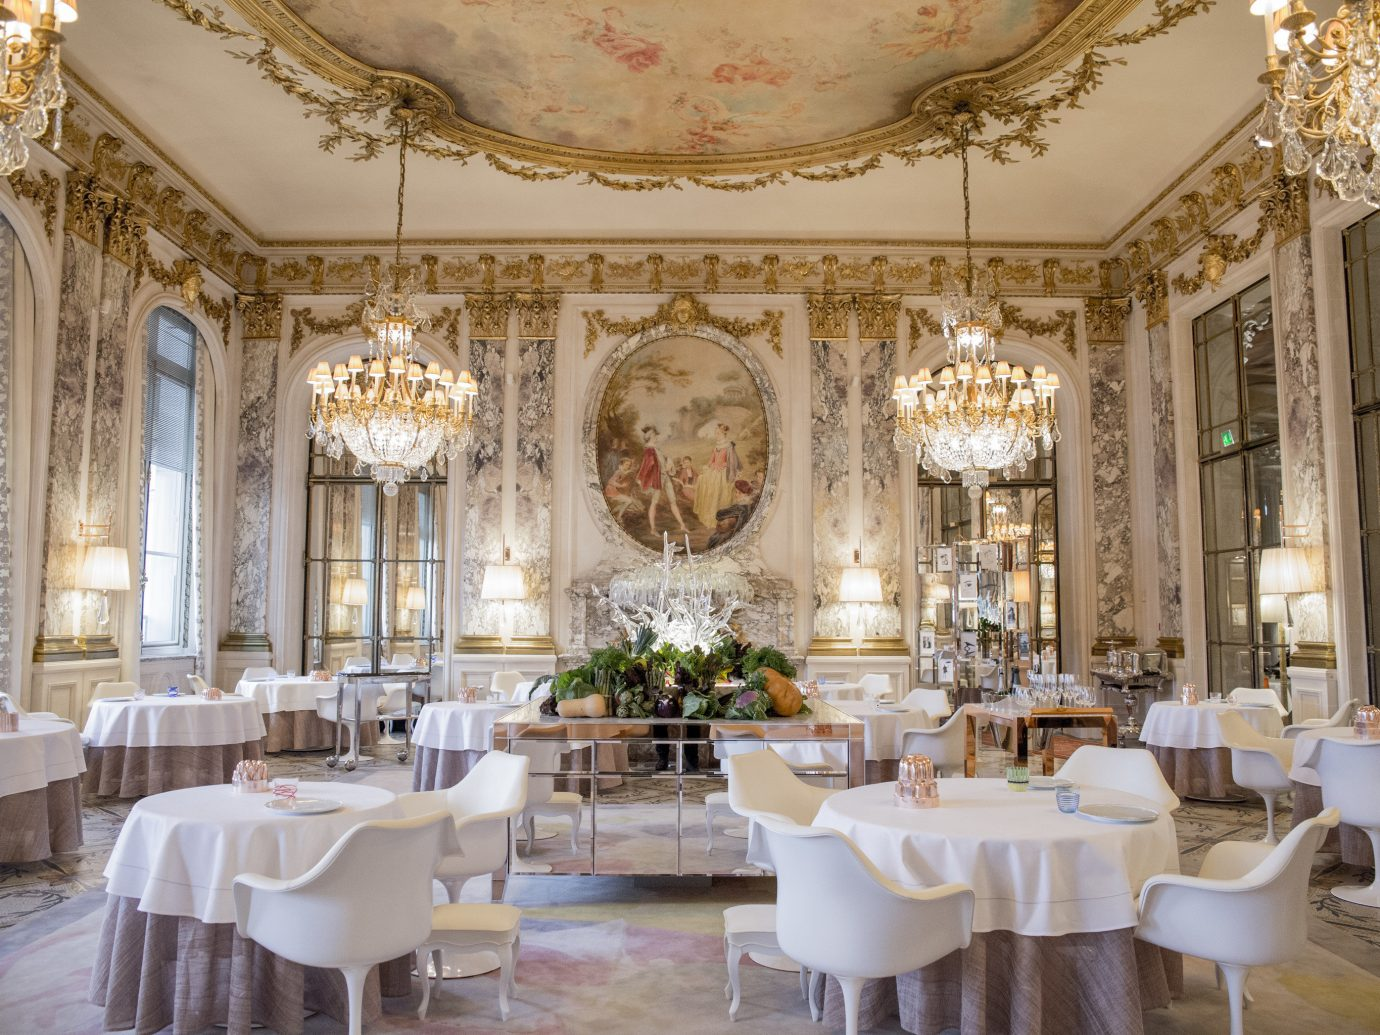 Food + Drink indoor window table floor chair room function hall palace ceiling ballroom meal estate interior design furniture mansion Dining wedding reception fancy decorated area several